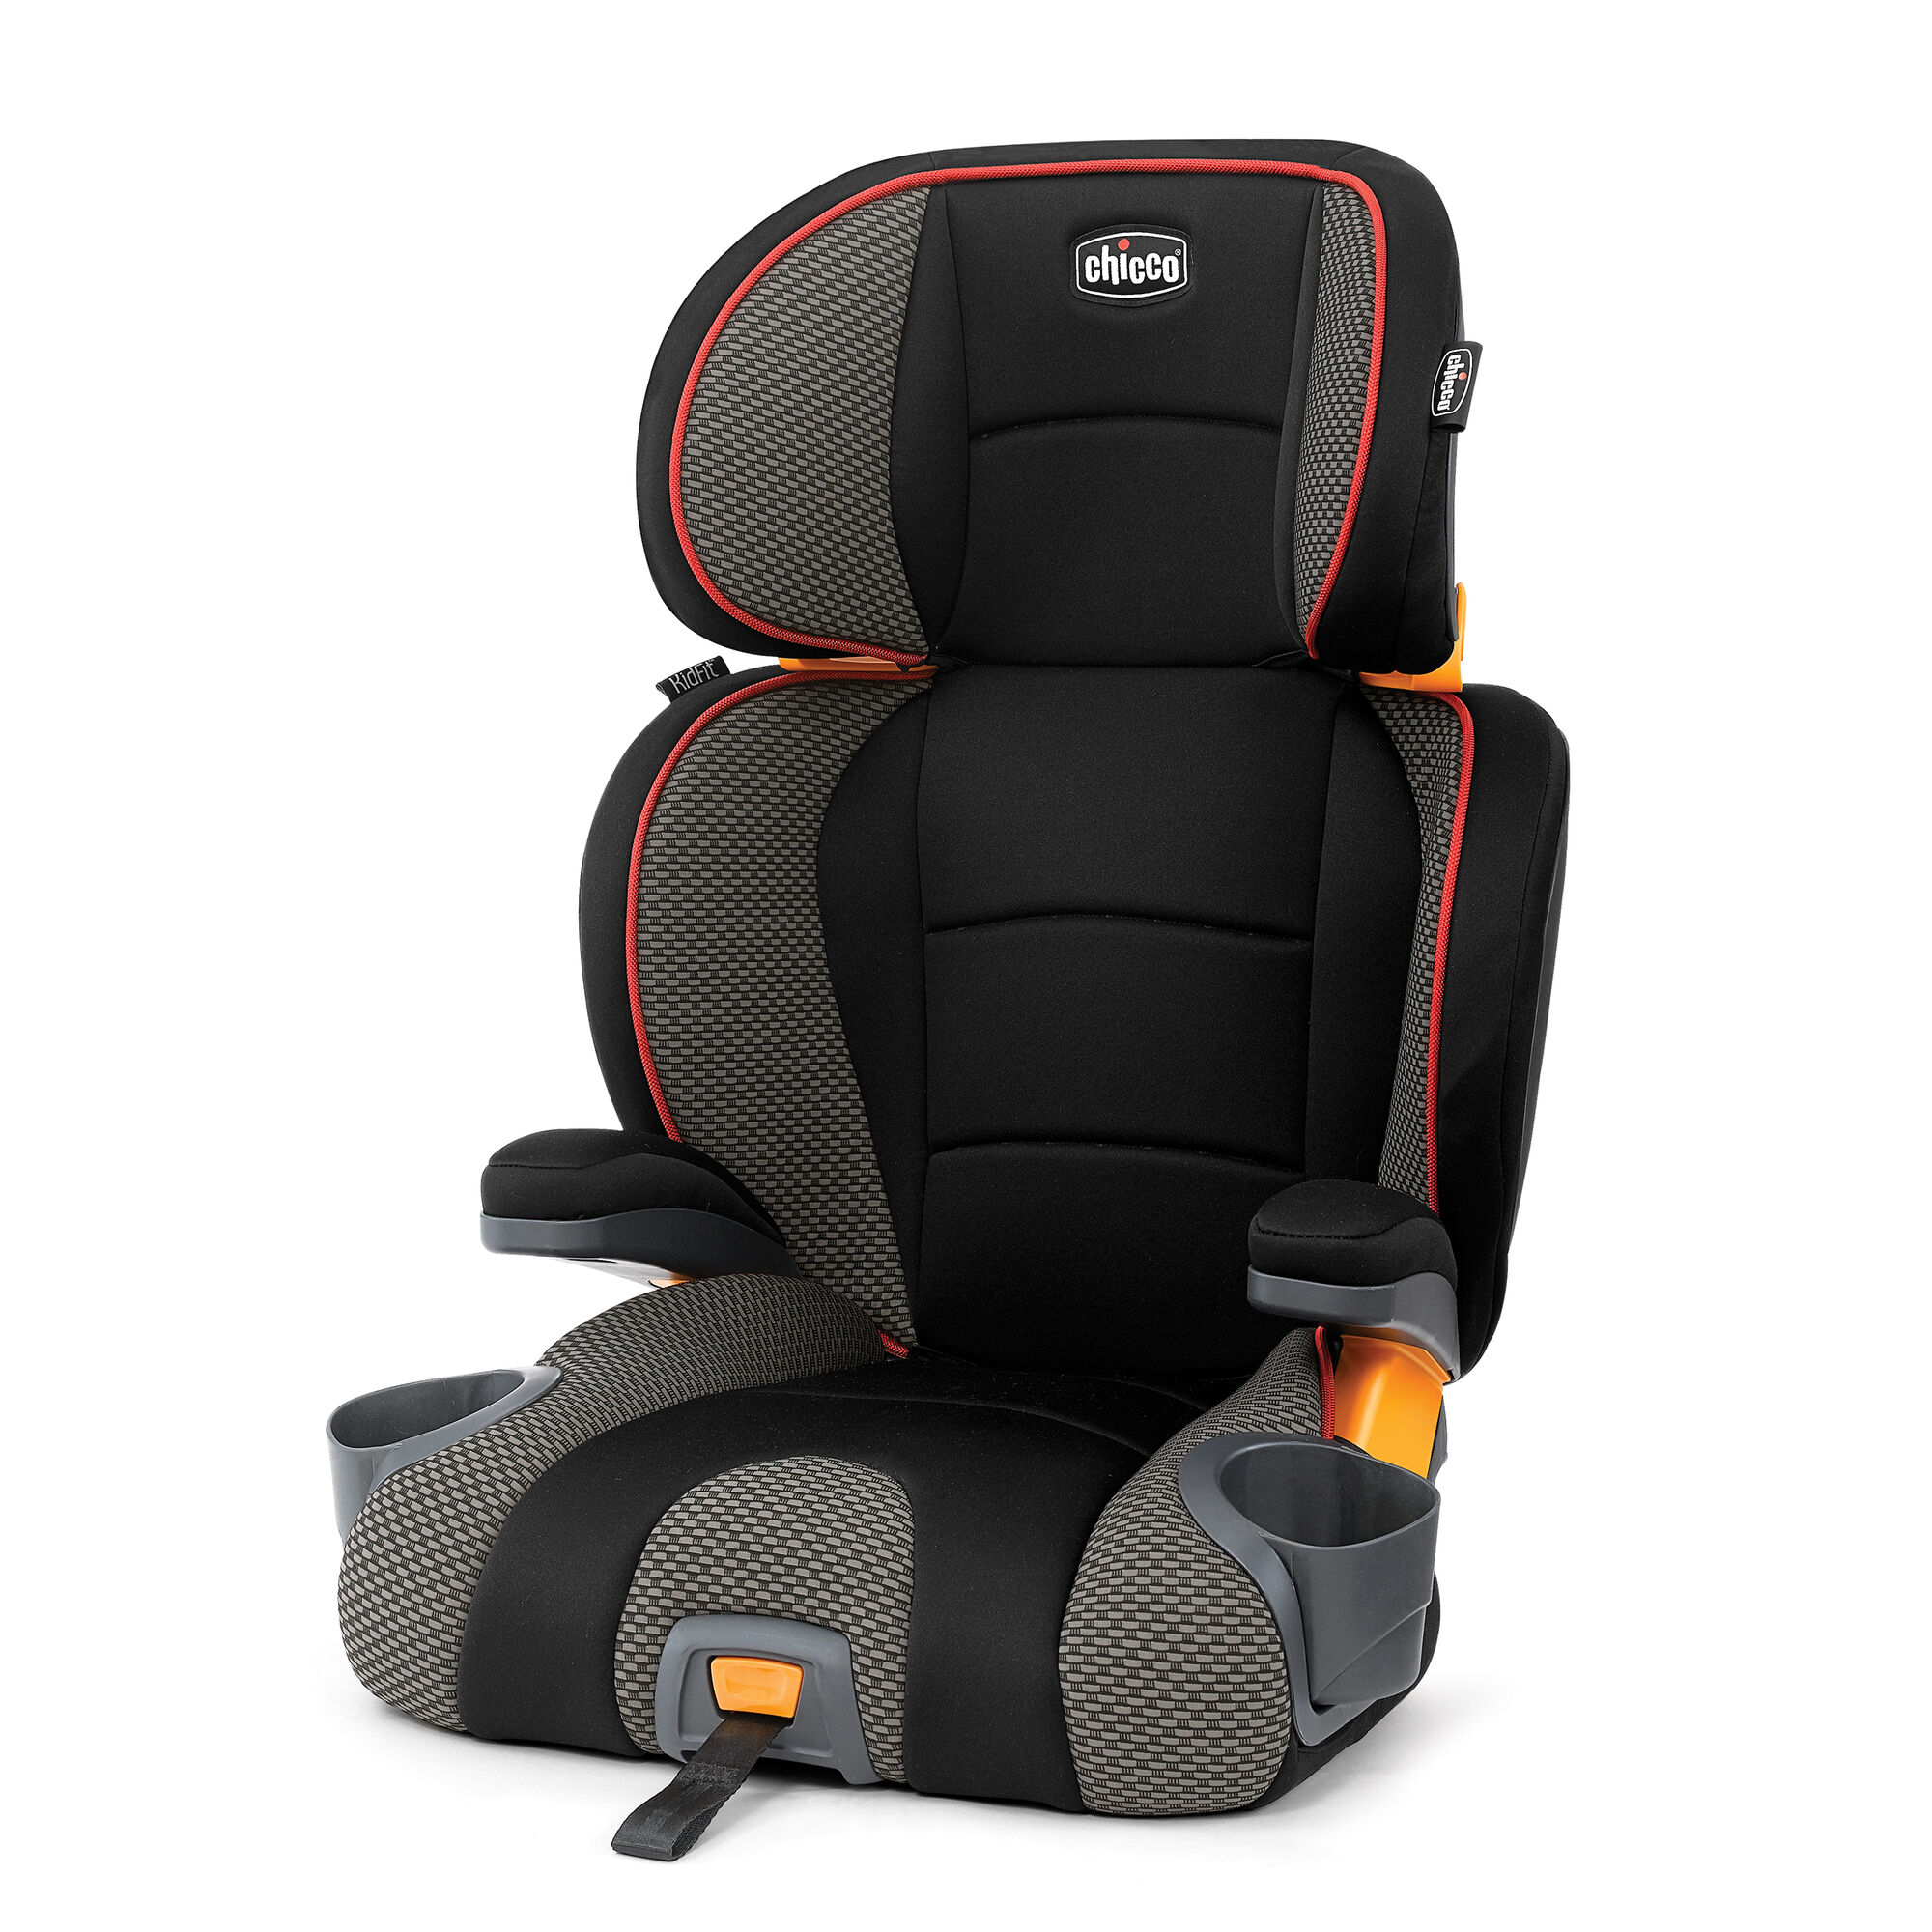 Chicco KidFit 2-in-1 Belt Positioning Booster Car Seat ...